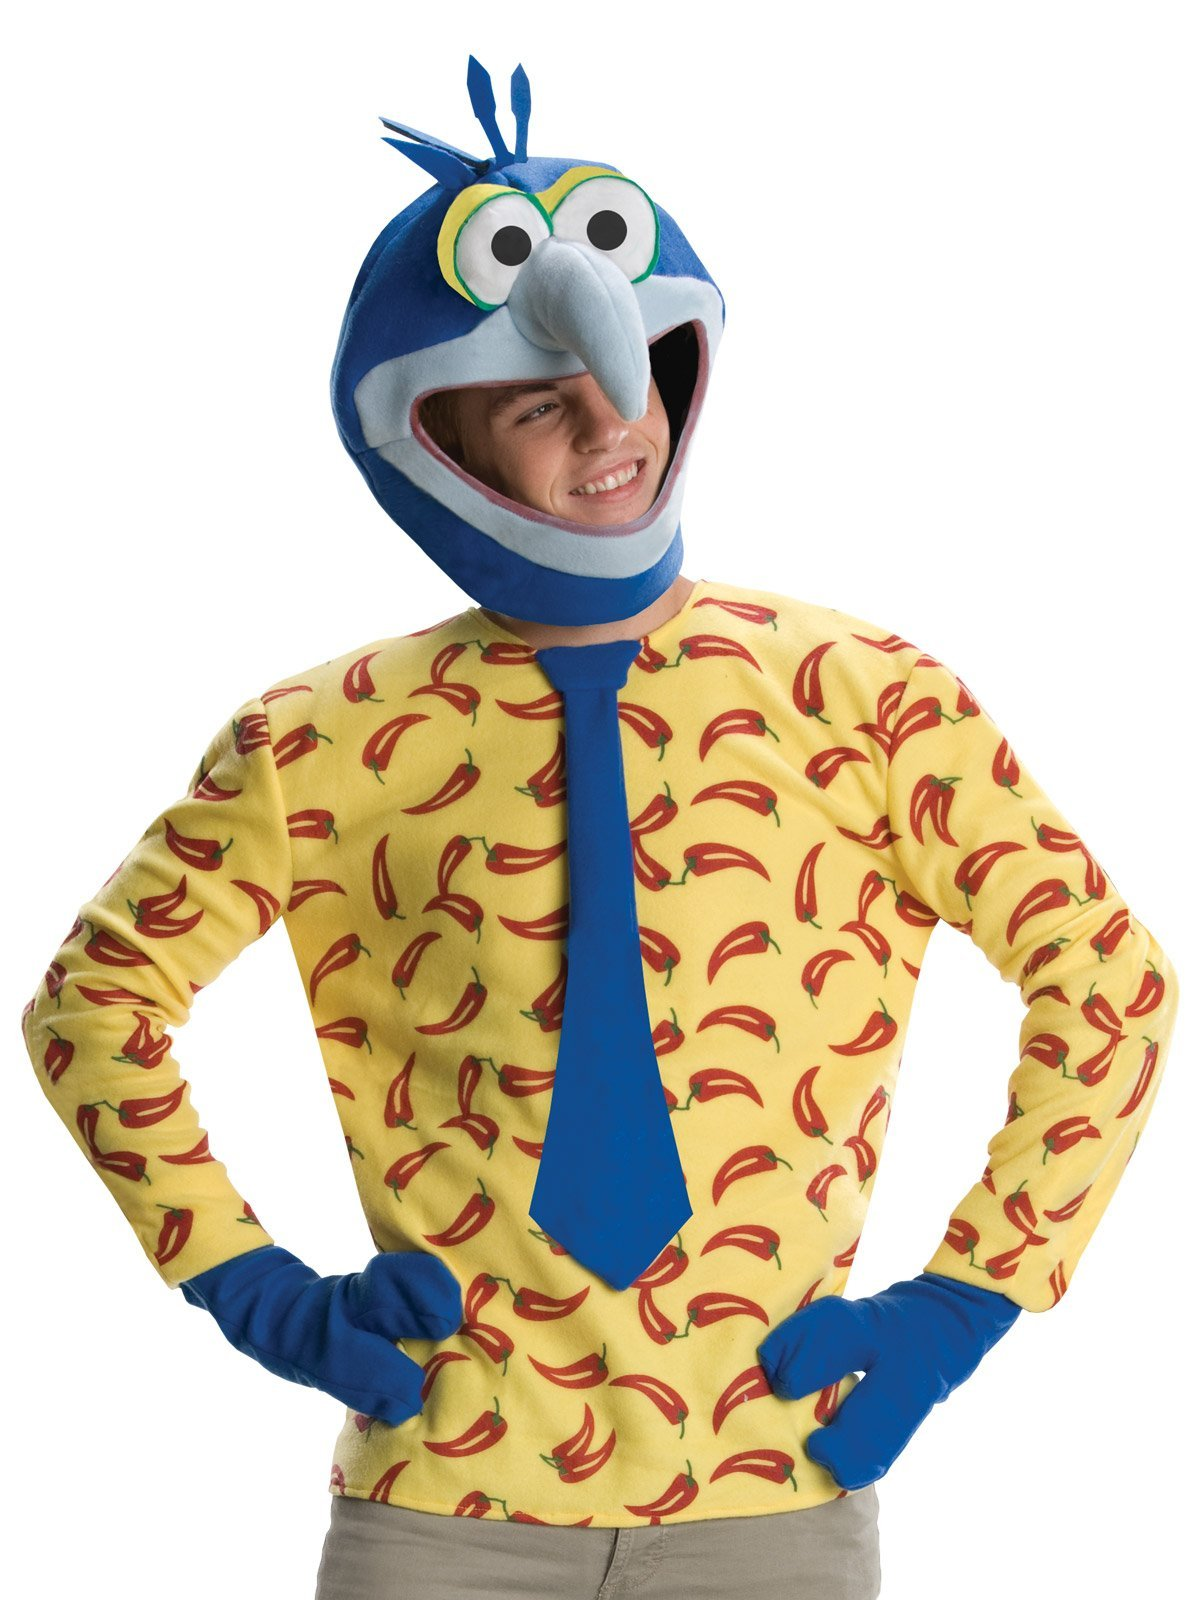 Gonzo Plush Costume - Buy Online Only